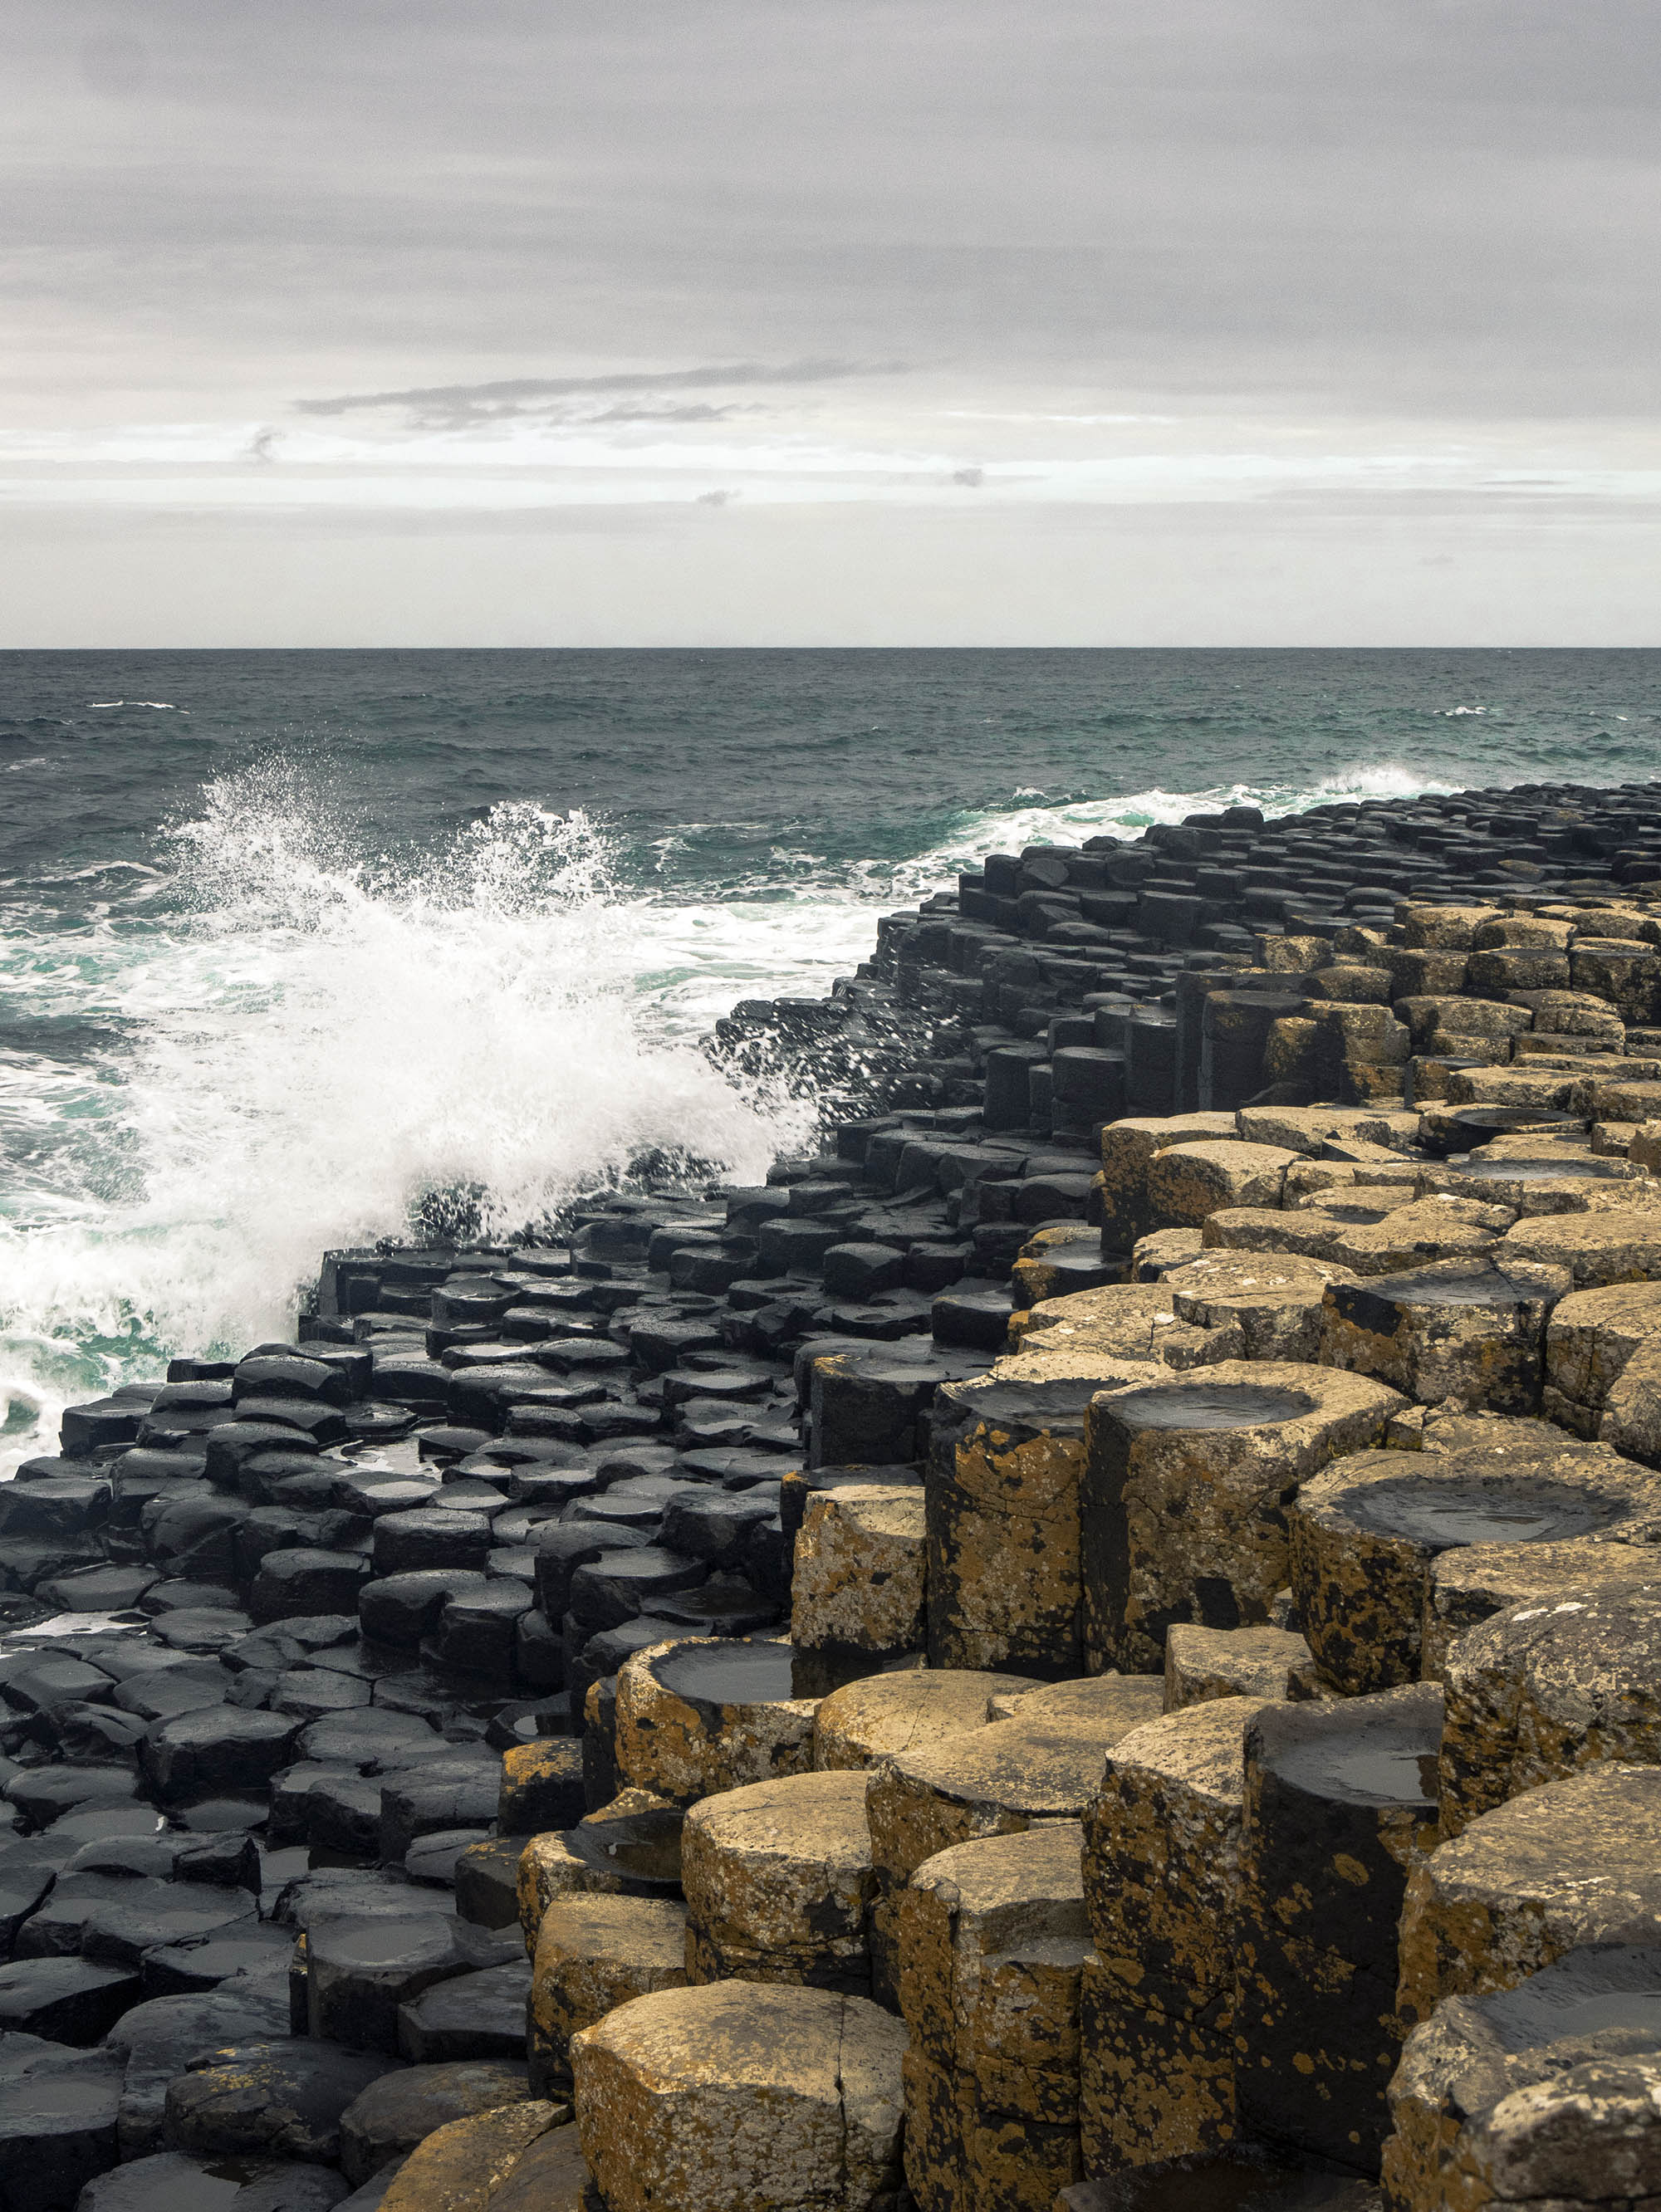 Rocks at Giant's Causeway